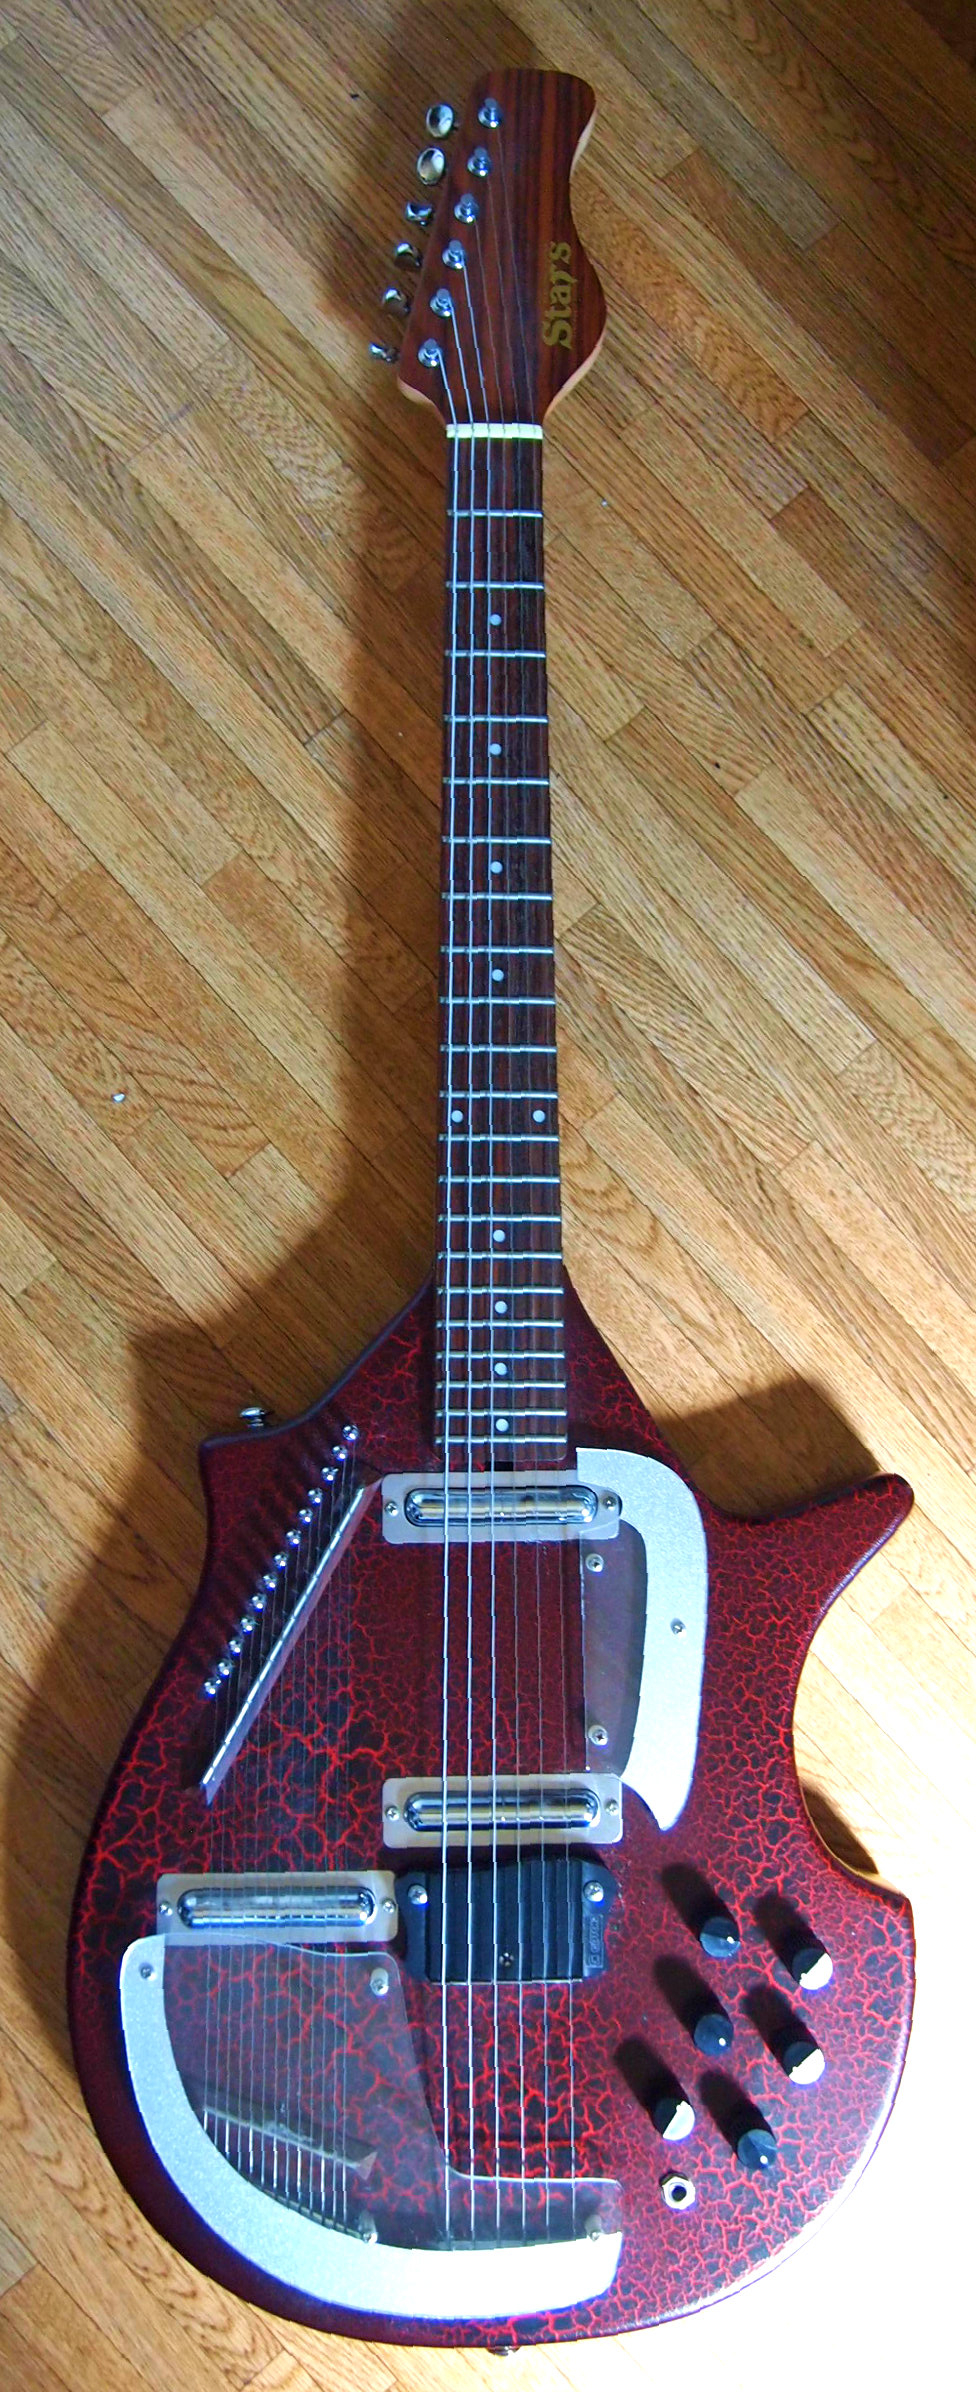 hight resolution of electric sitar wikipedia wiring diagram also typical danelectro guitars schematics on